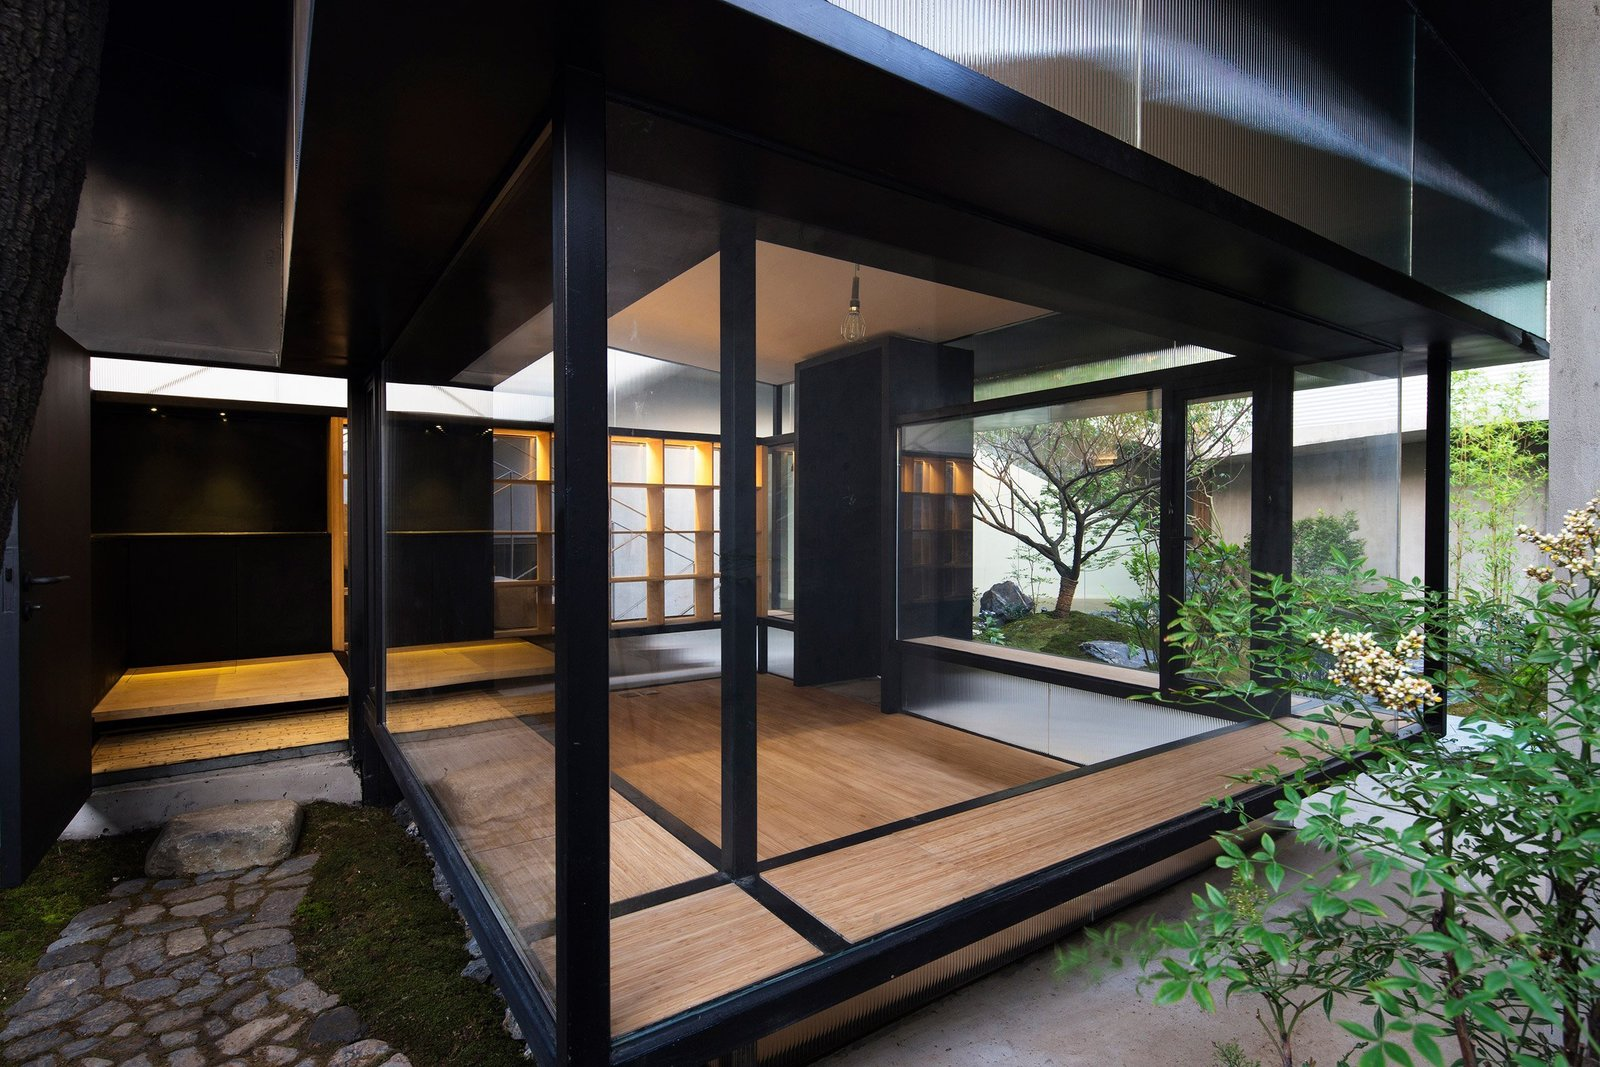 Windows, Metal, and Casement Window Type  Photo 7 of 7 in 7 Tips For Creating Your Own Home Meditation Zone